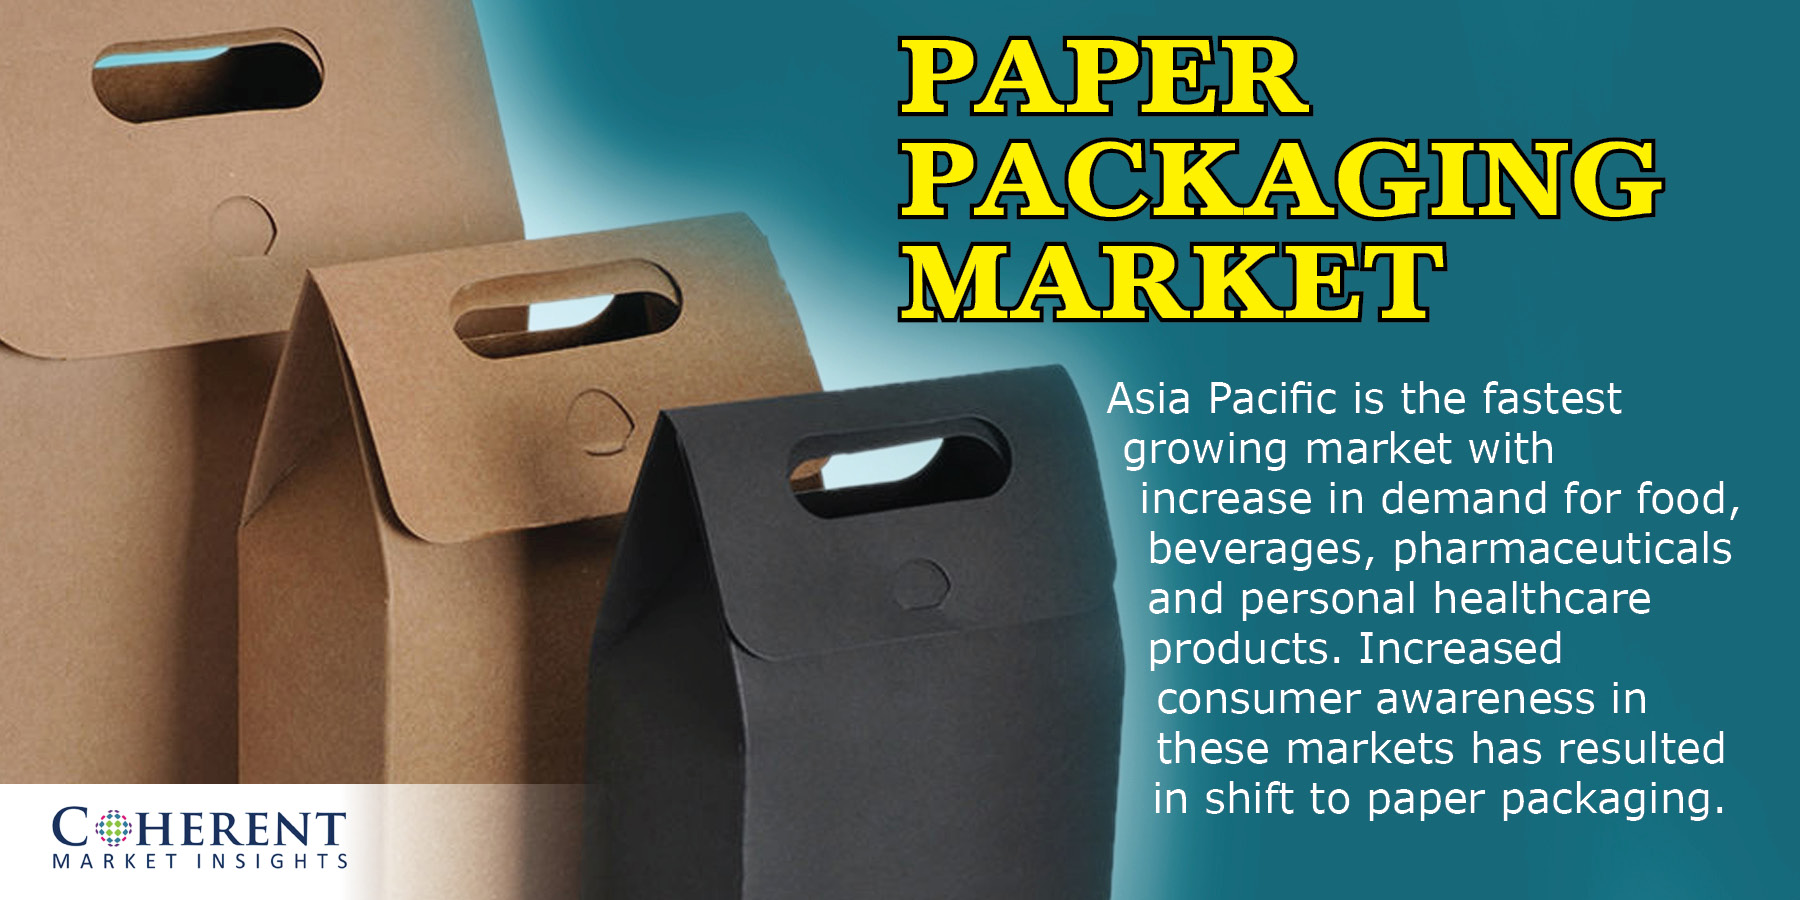 market trends paper Envelope paper market is driven by increase in demand for packaging envelopes and mailers the envelope paper market is segmented into wood pulp, cotton fiber, paperboard, synthetic substrates and others.